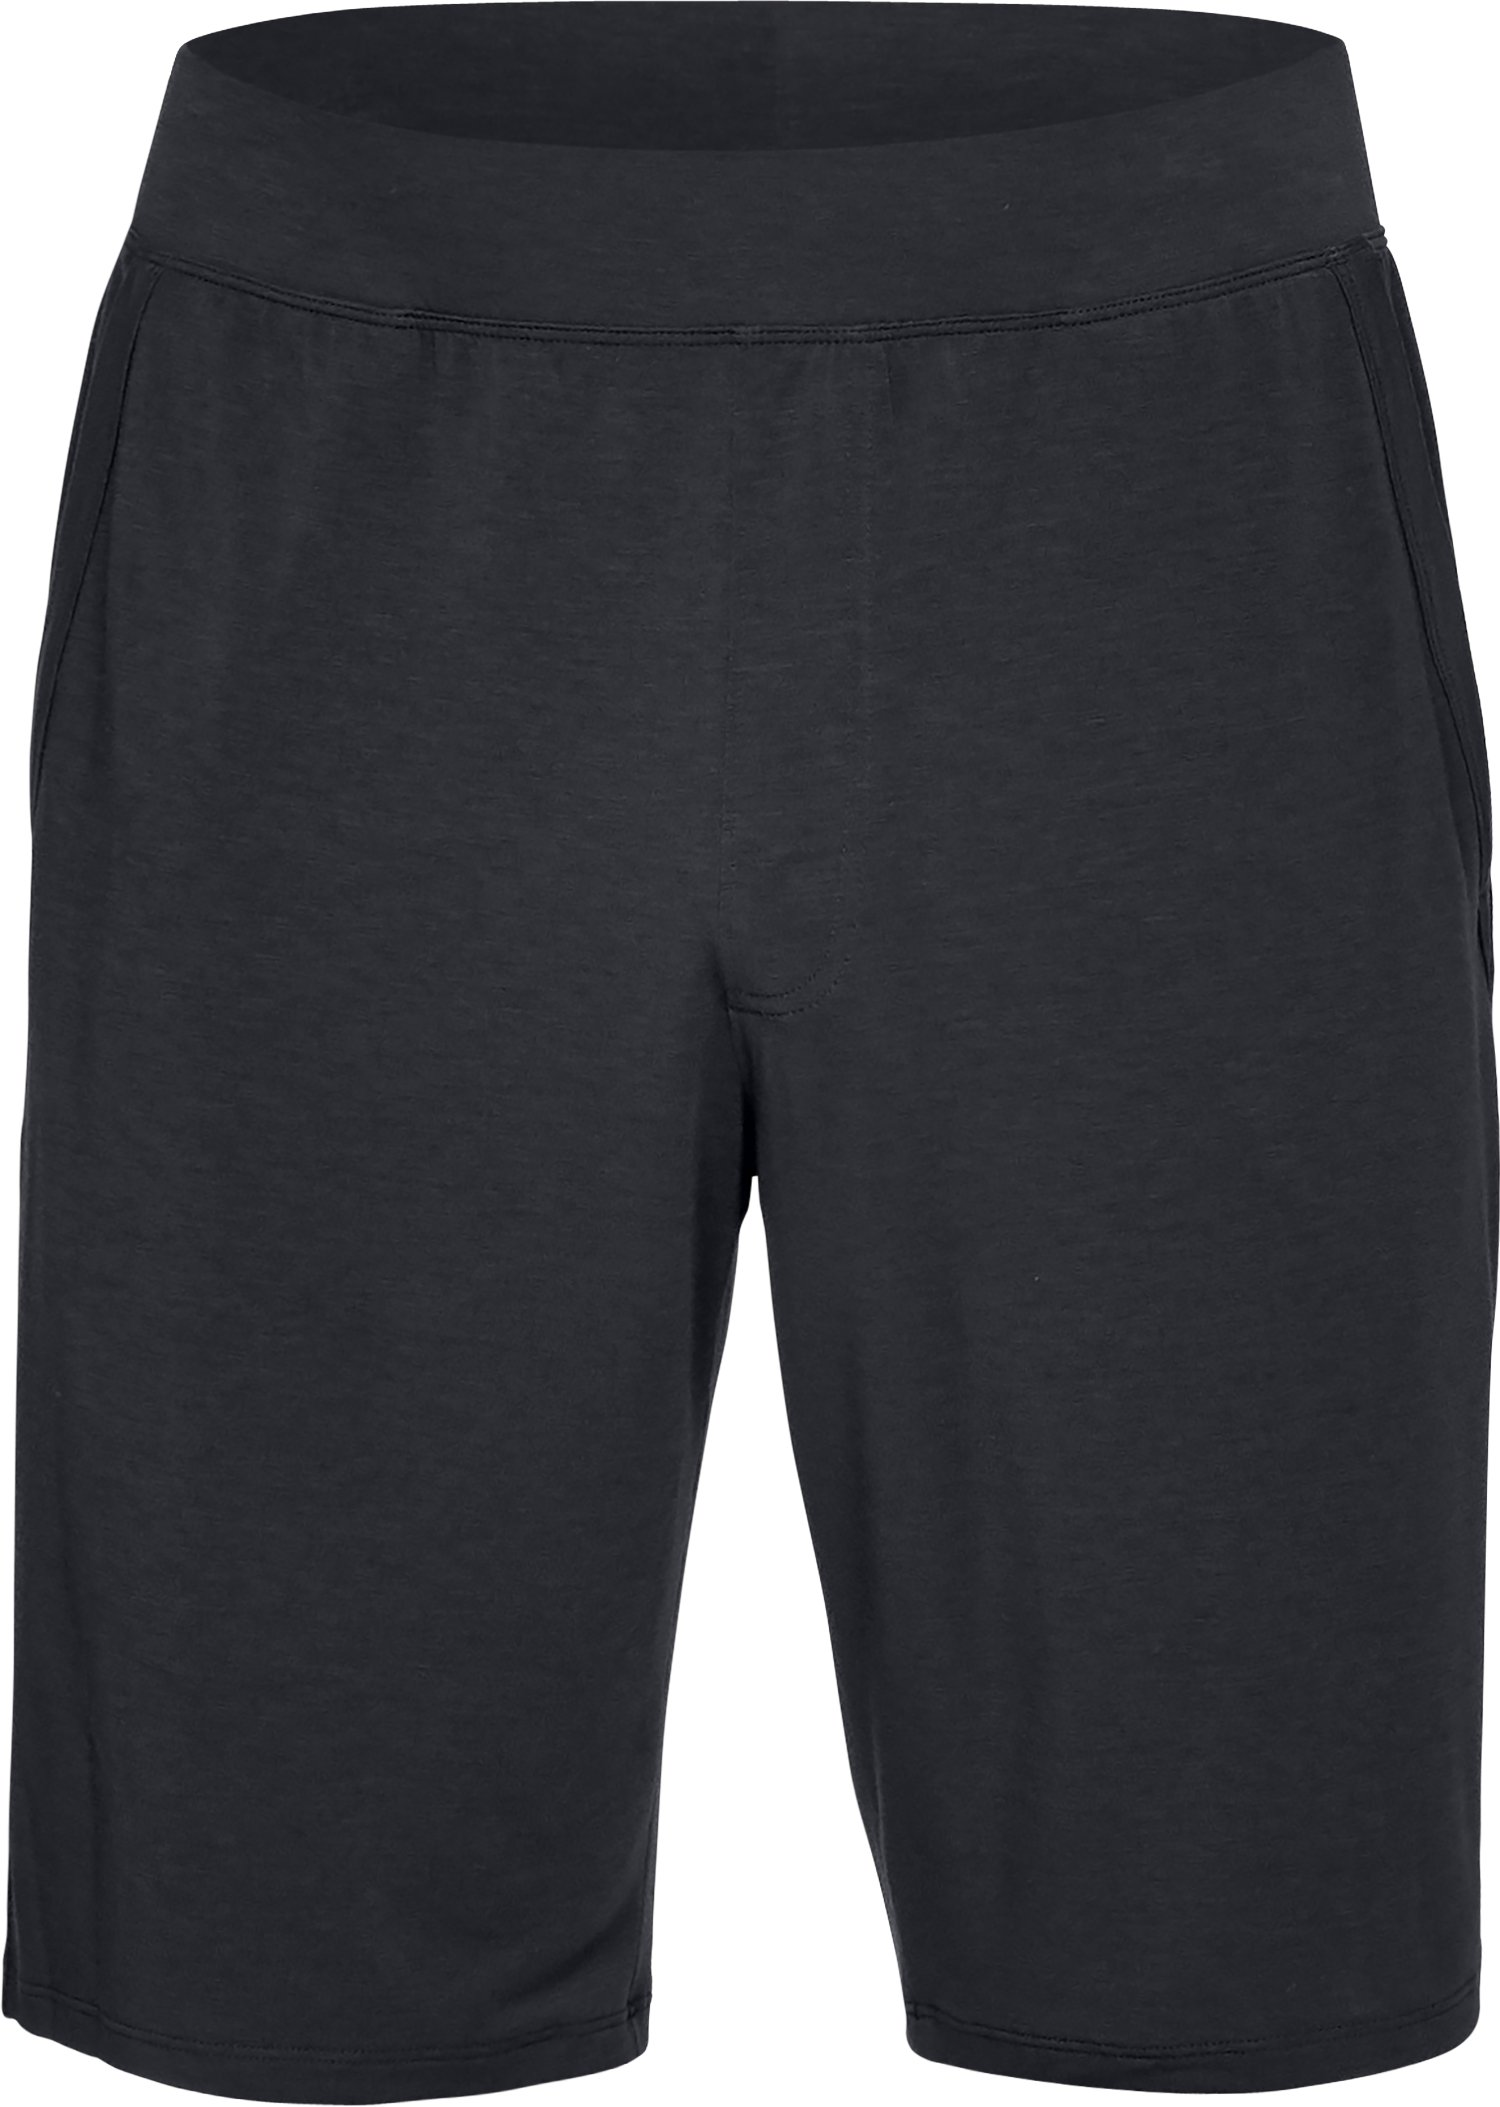 Men's Athlete Recovery Sleepwear™ Shorts, Black ,